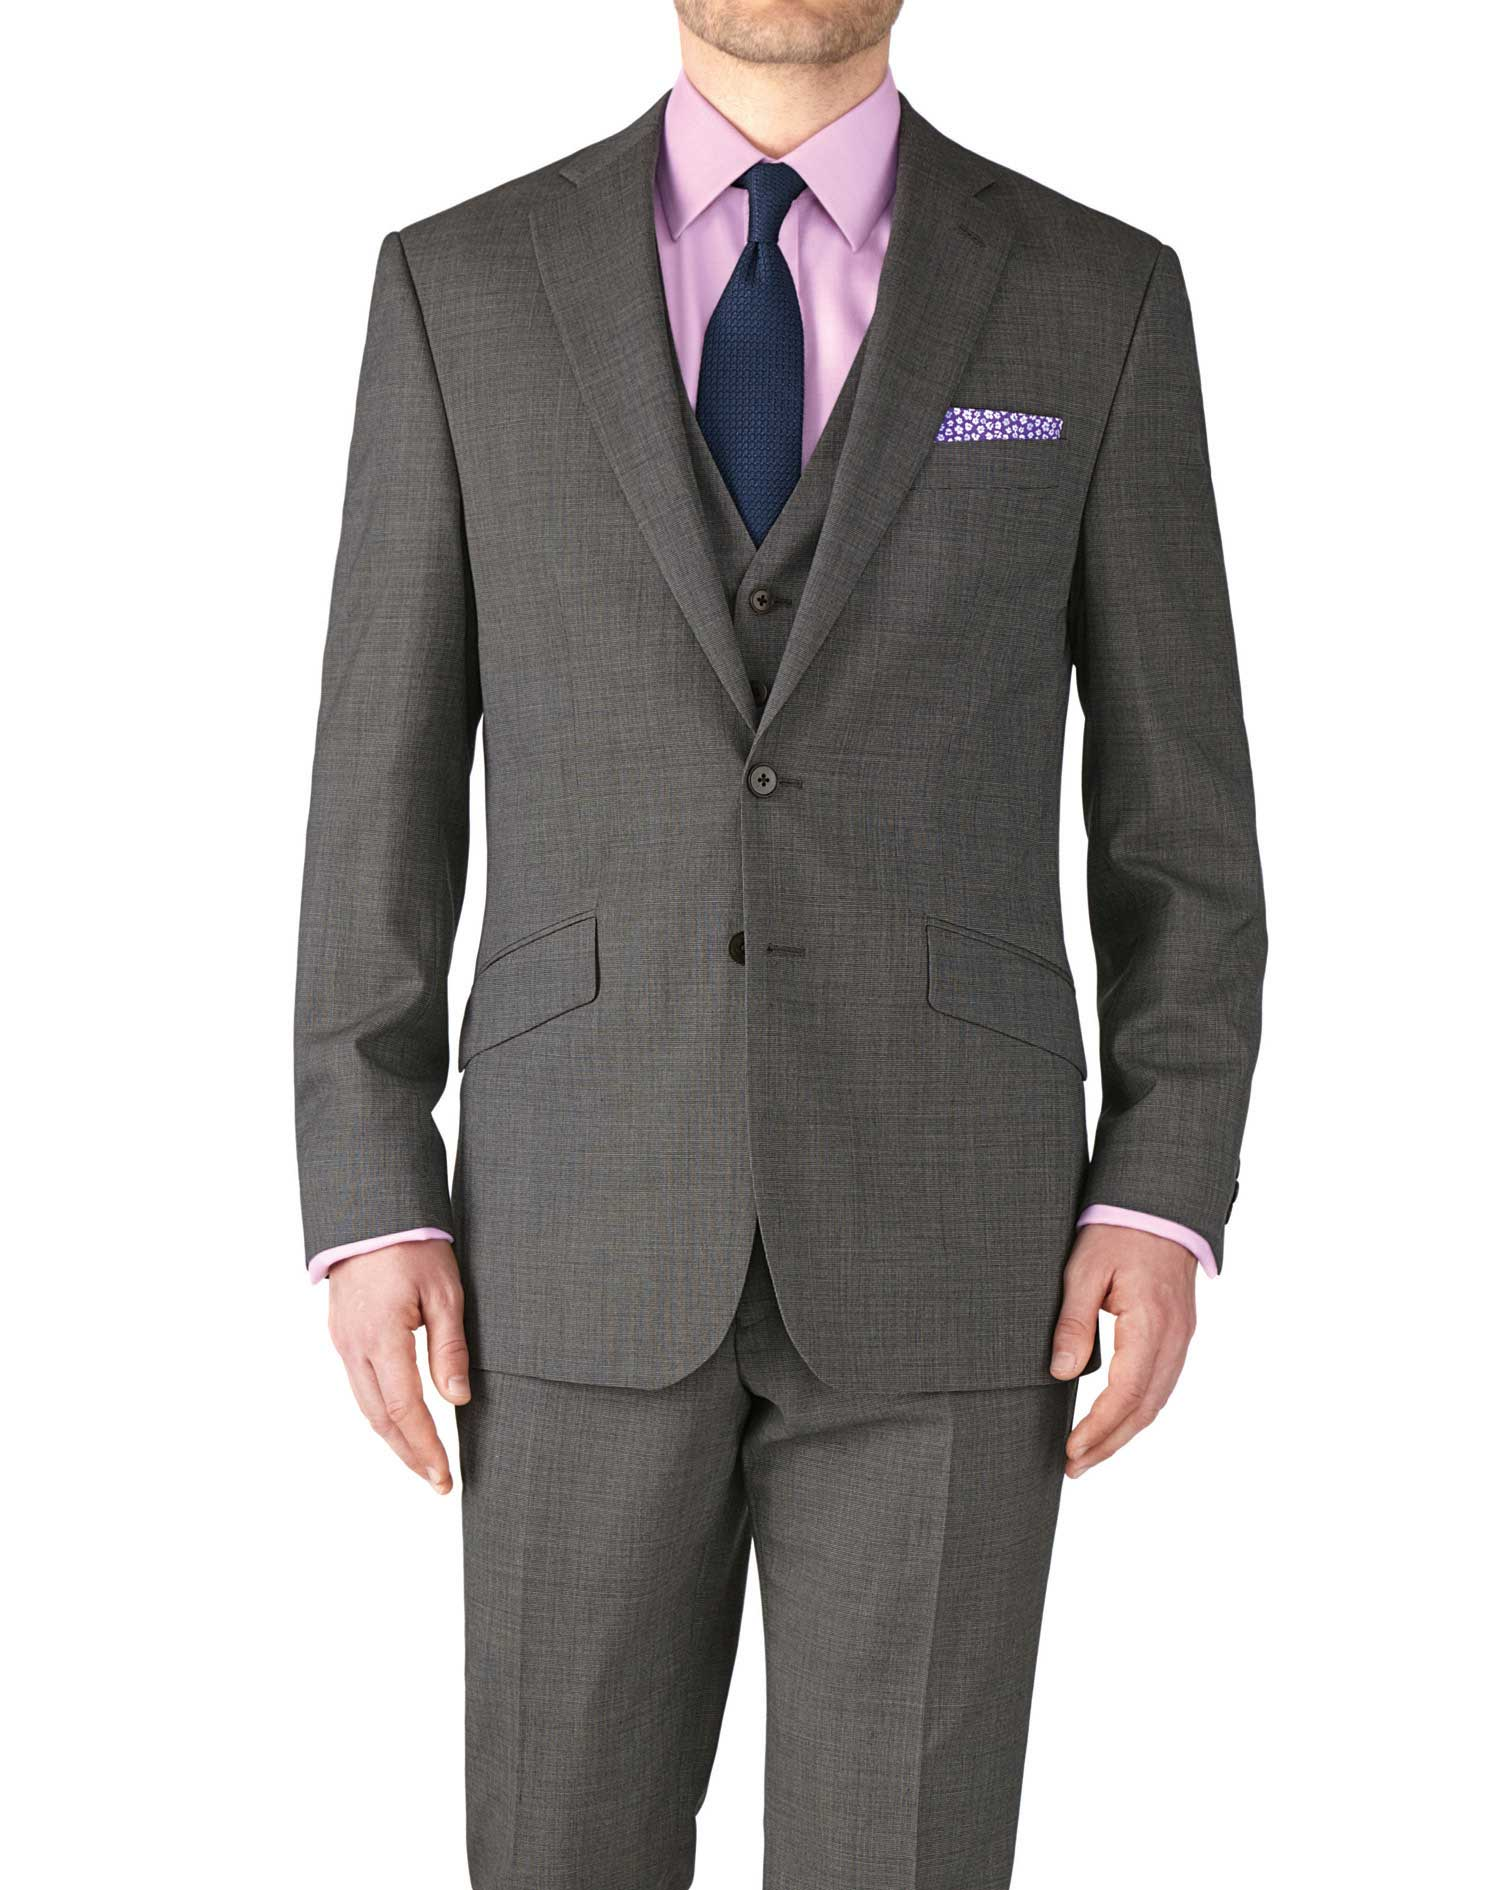 Grey Slim Fit End-On-End Business Suit Wool Jacket Size 40 Short by Charles Tyrwhitt